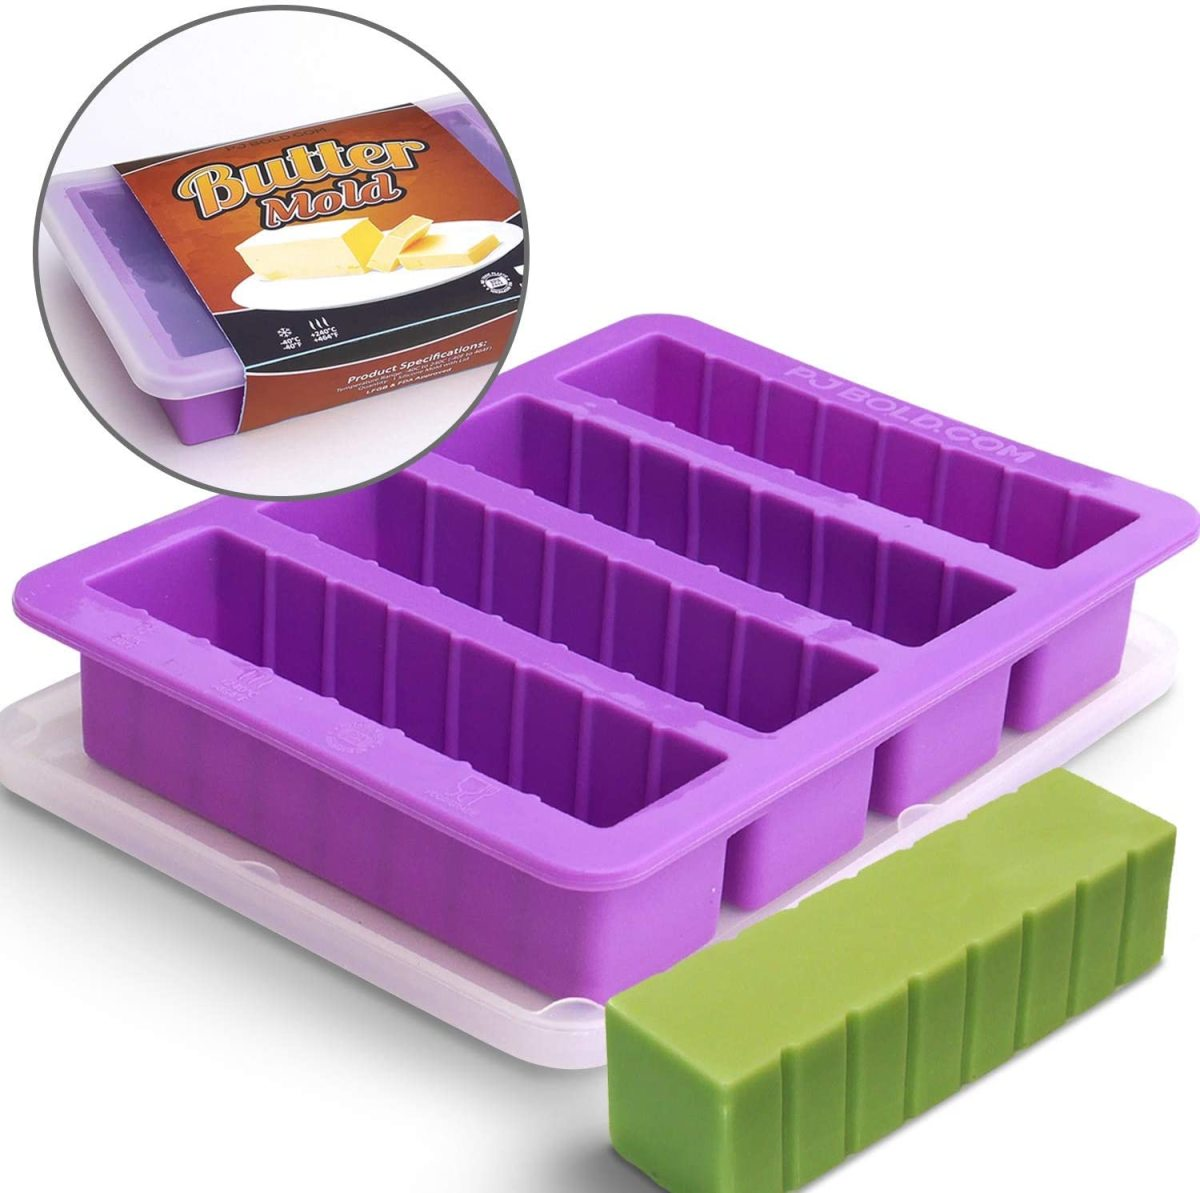 This silicone butter stick mold is my favorite.    The graduated marks on the sticks makes it easy to correctly measure in my recipes.  The sticks drop out easily.  This one also comes with a silicone lid for storage.